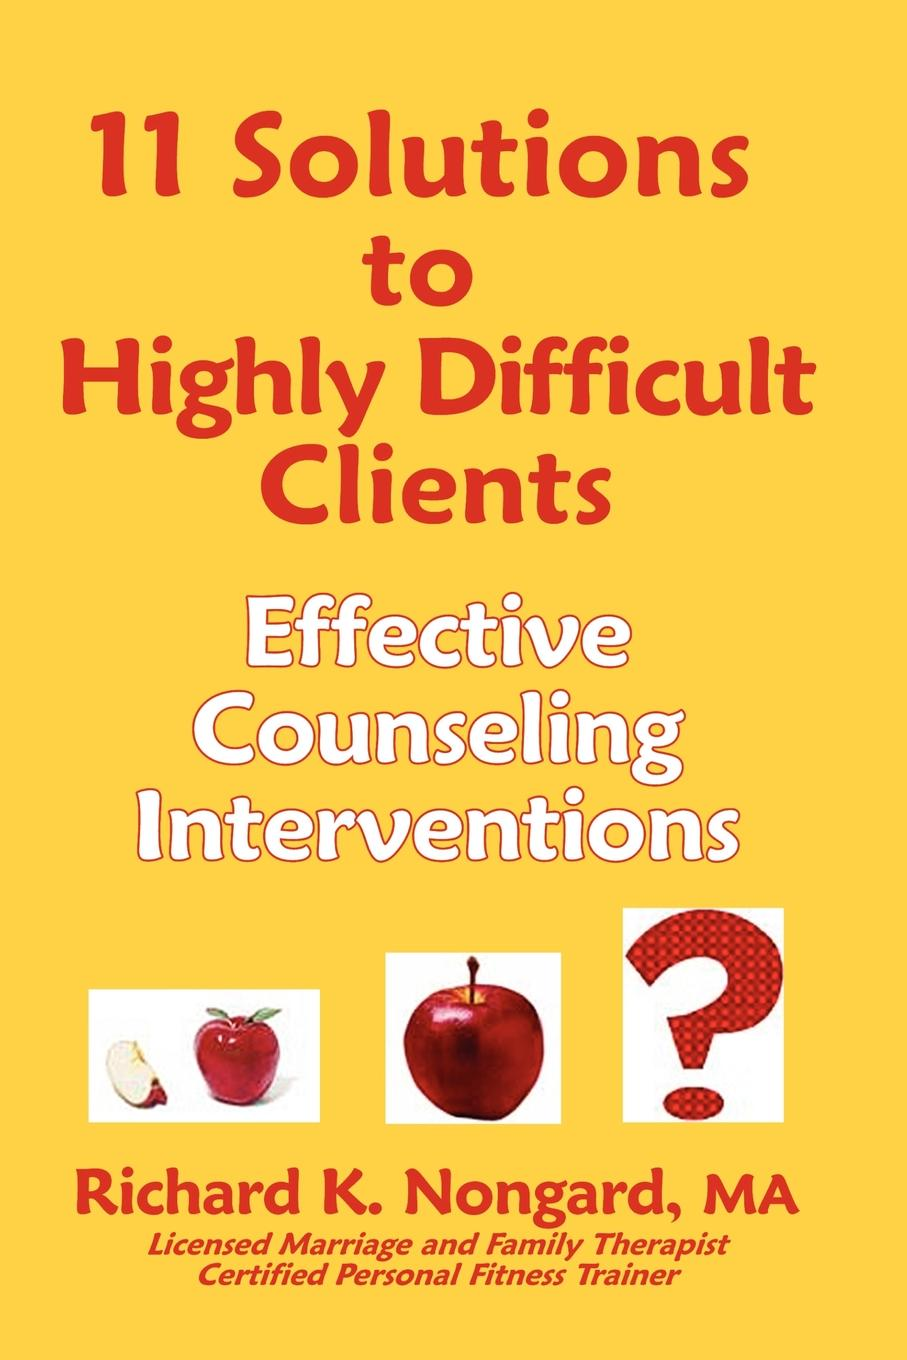 Richard K. Nongard 11 Solutions to Highly Difficult Clients. Effective Counseling Interventions sherwyn morreale building the high trust organization strategies for supporting five key dimensions of trust